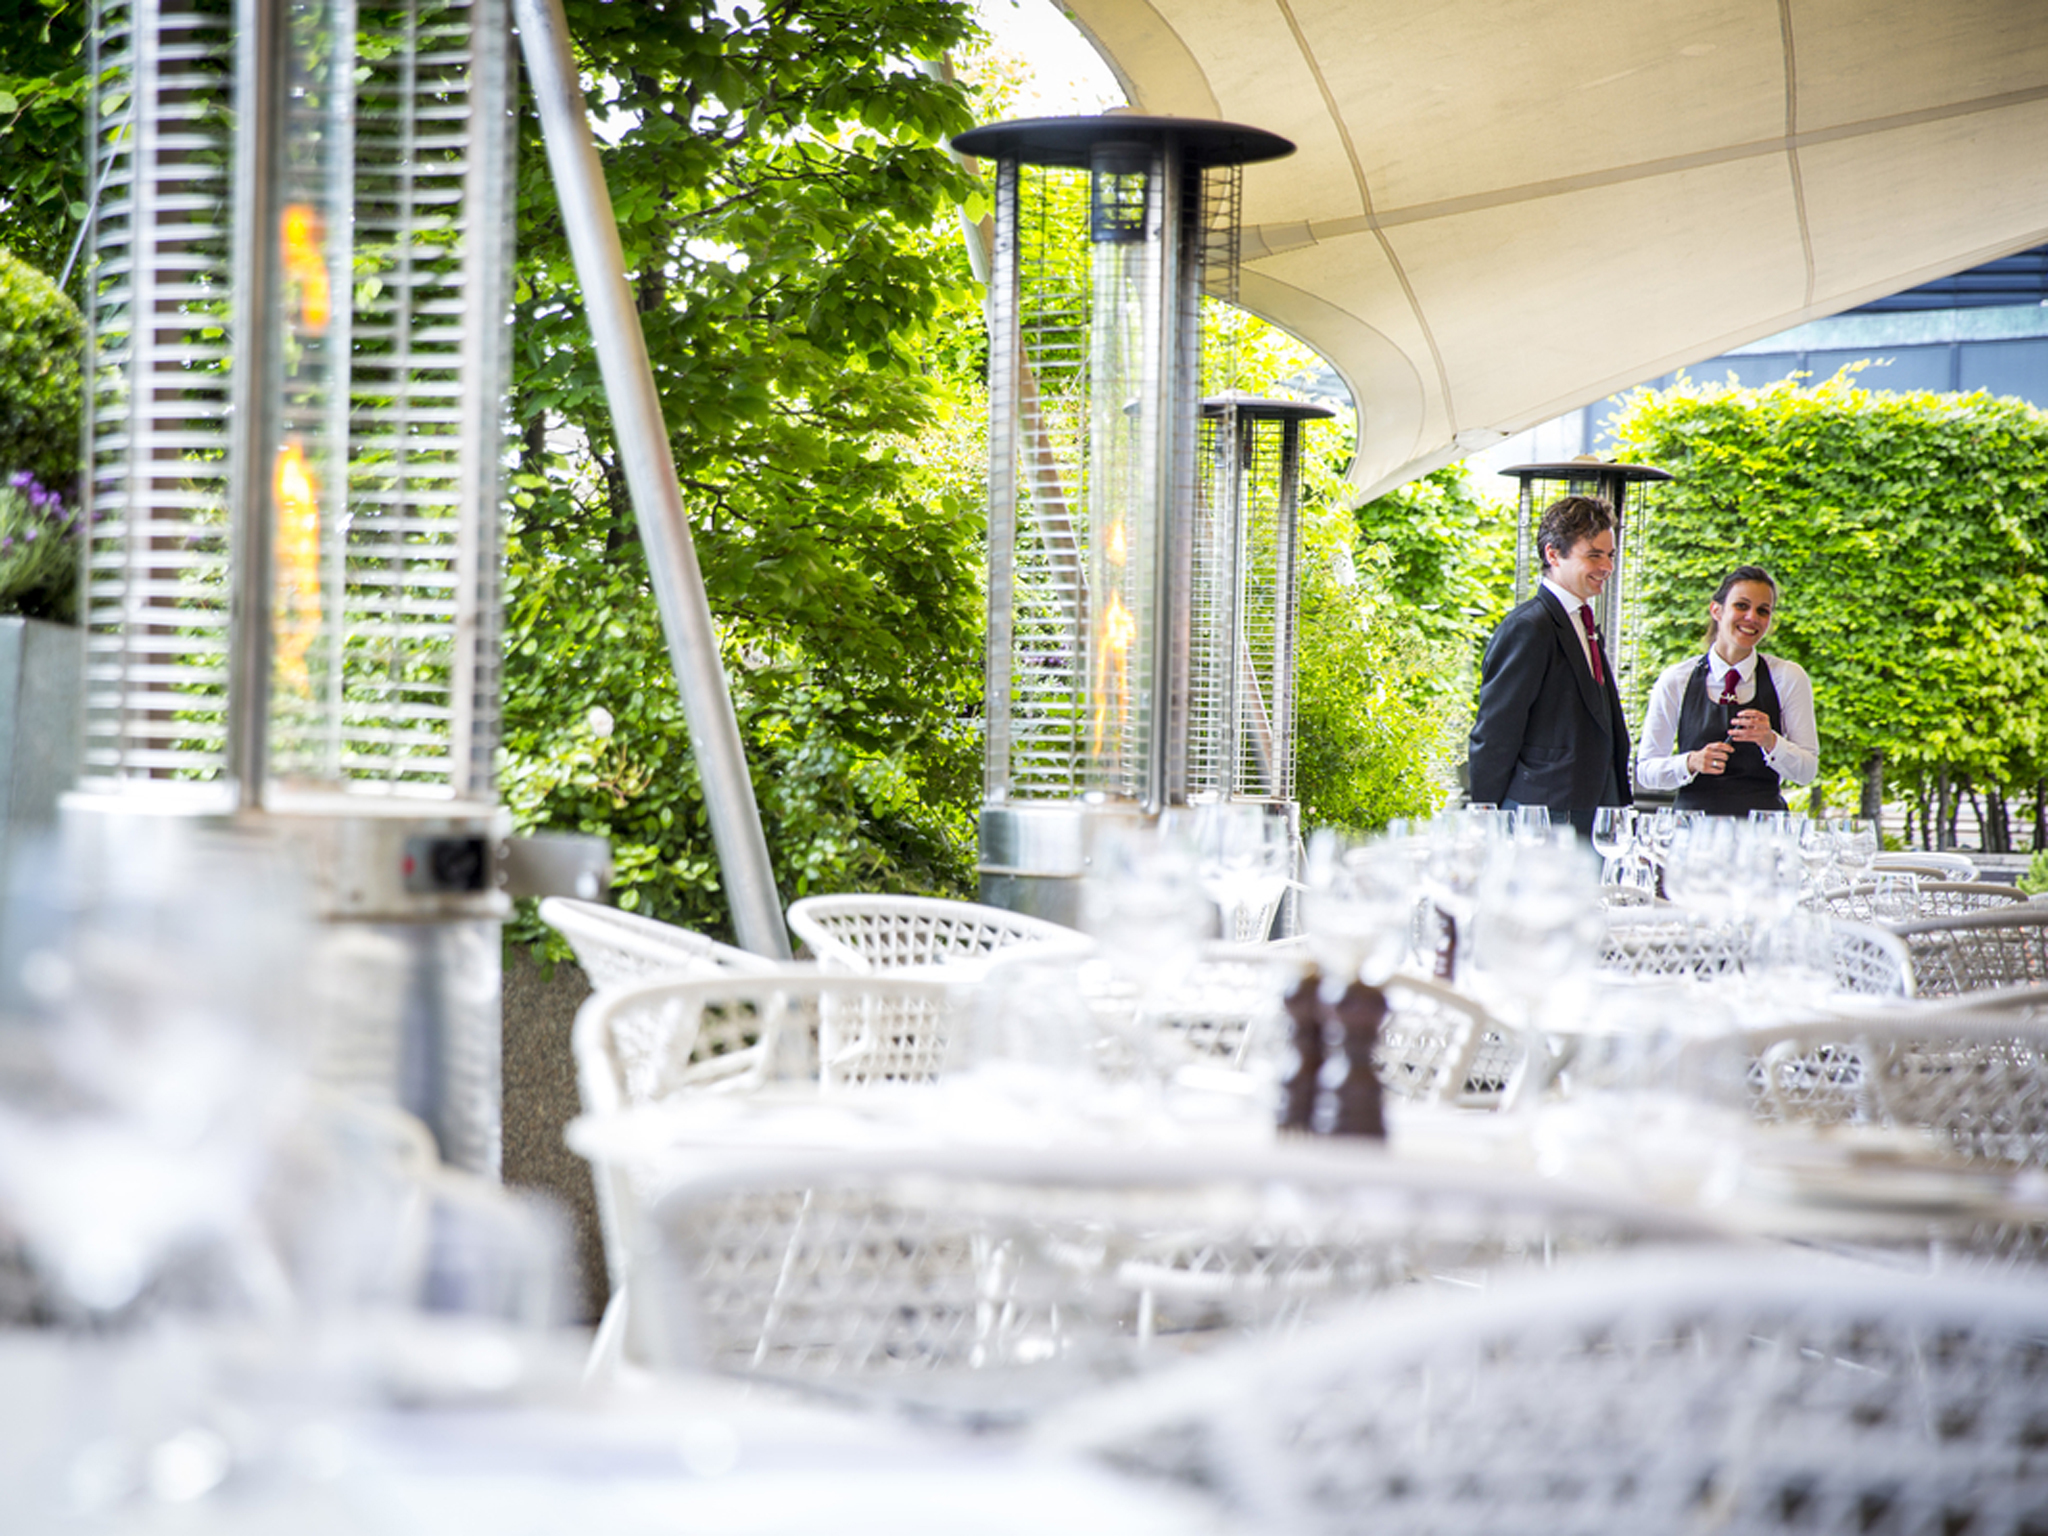 Rooftop restaurants in London, coq d'argent